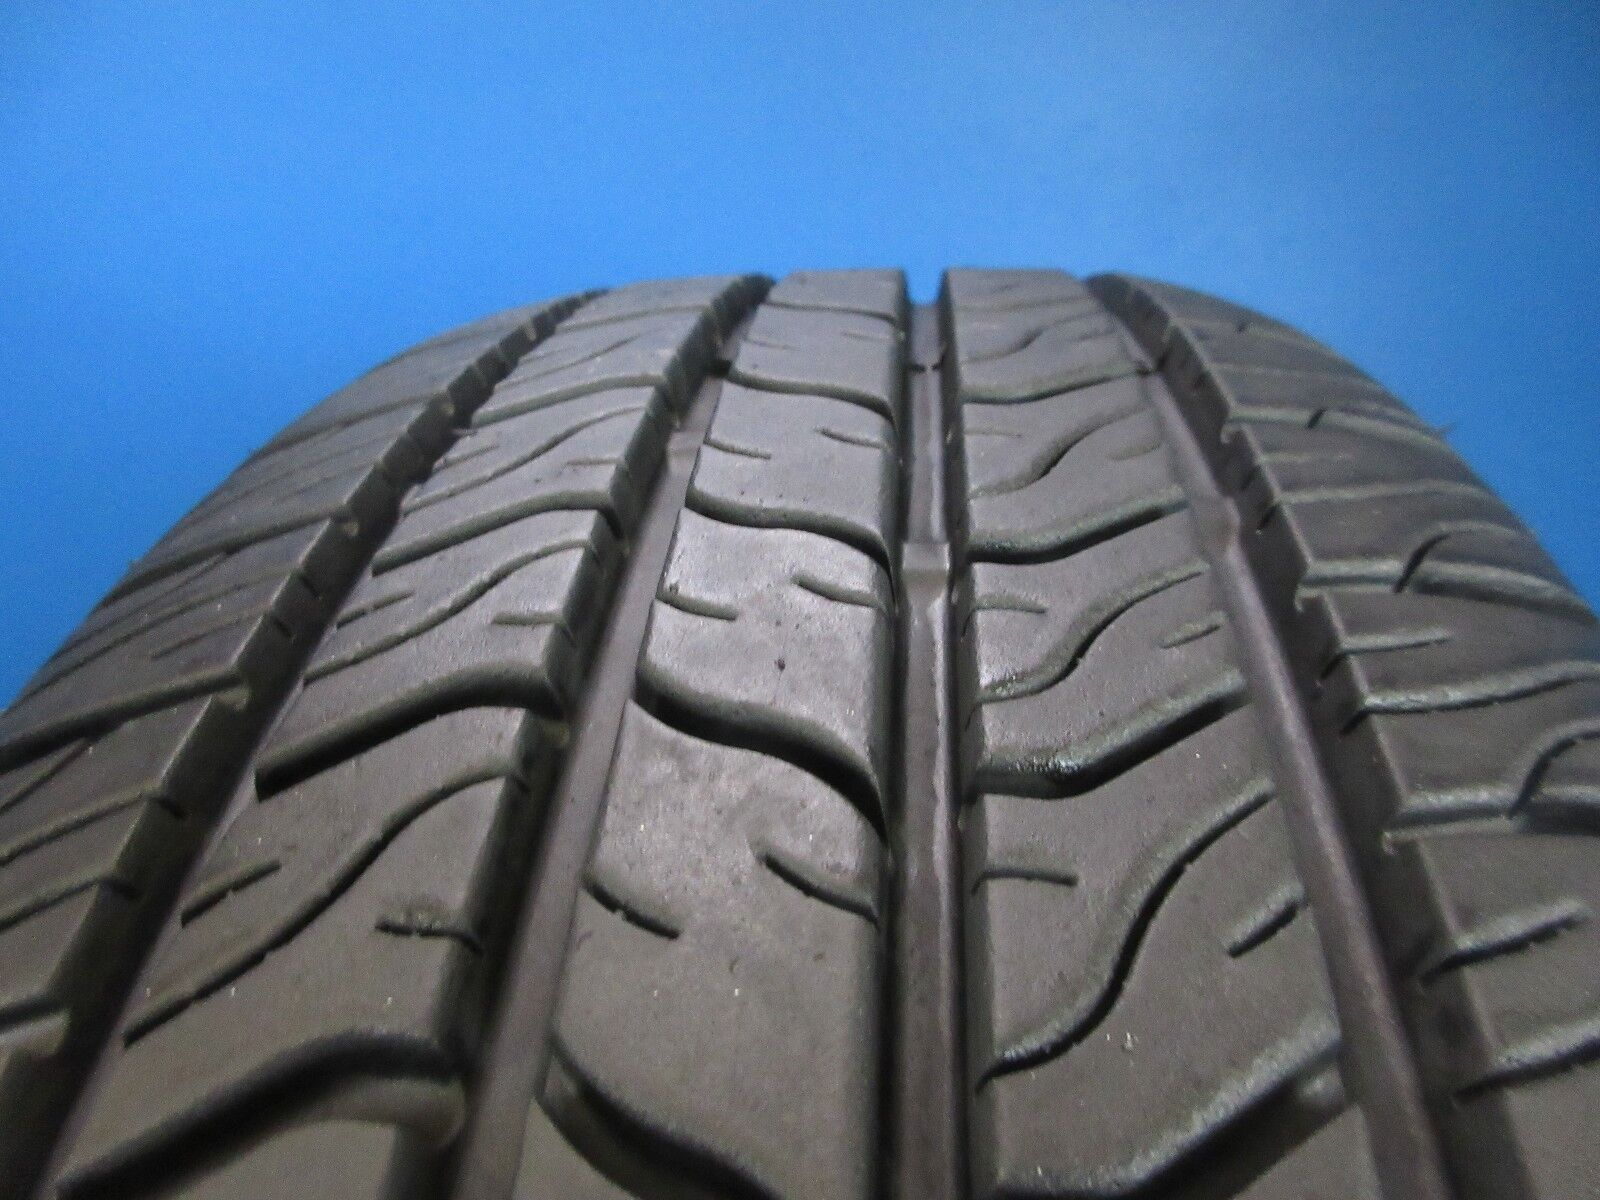 One Used Primewell Valera HT   225 70 16  9-10/32 High Tread No Patch  B1273